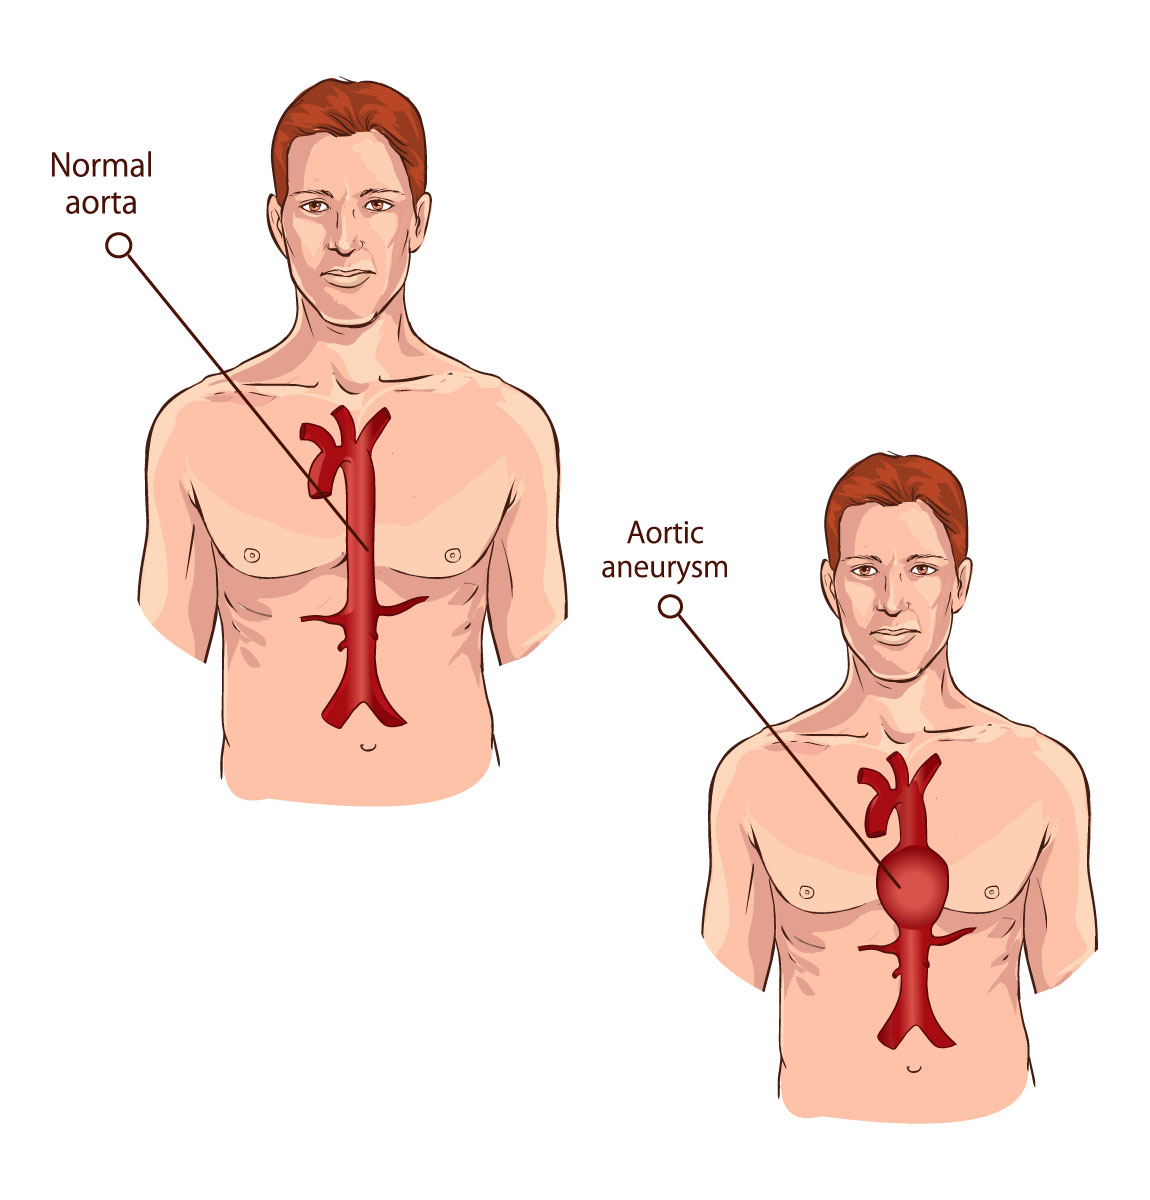 Normal aorta and aorta with aneurysm illustration